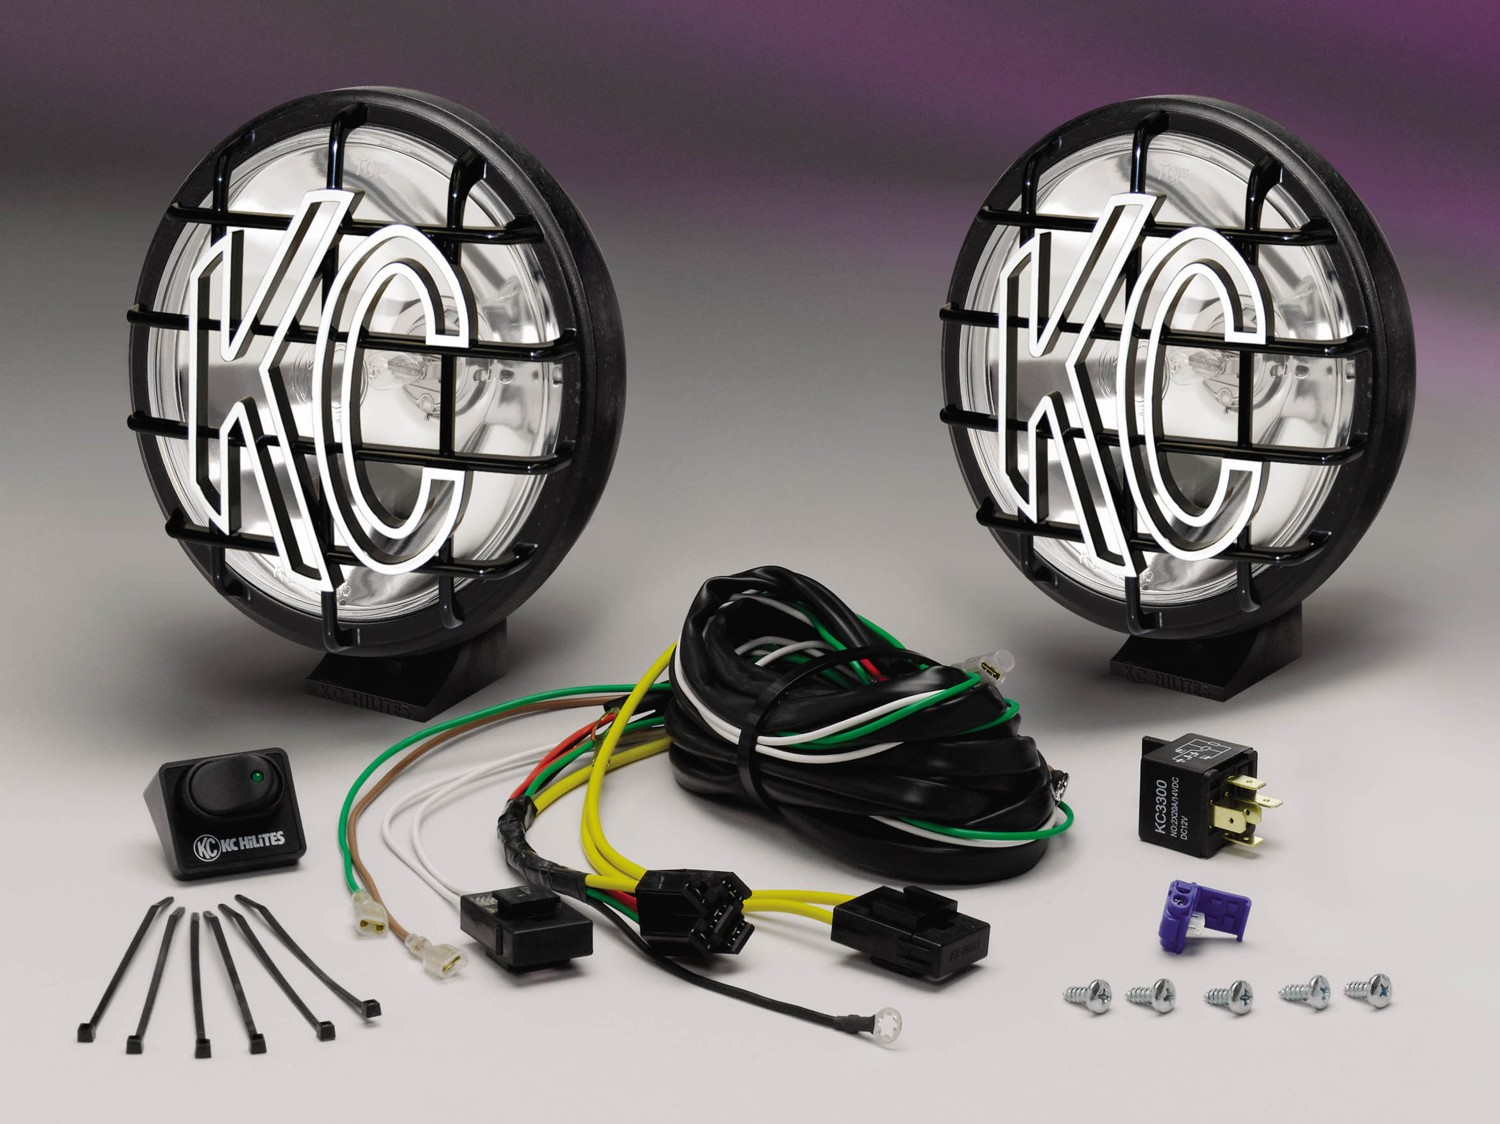 Now Available At Summit Racing Equipment New Off Road Products From Kc Hilites Wiring Harness Apollo Pro Series 6 Inch Light Kit